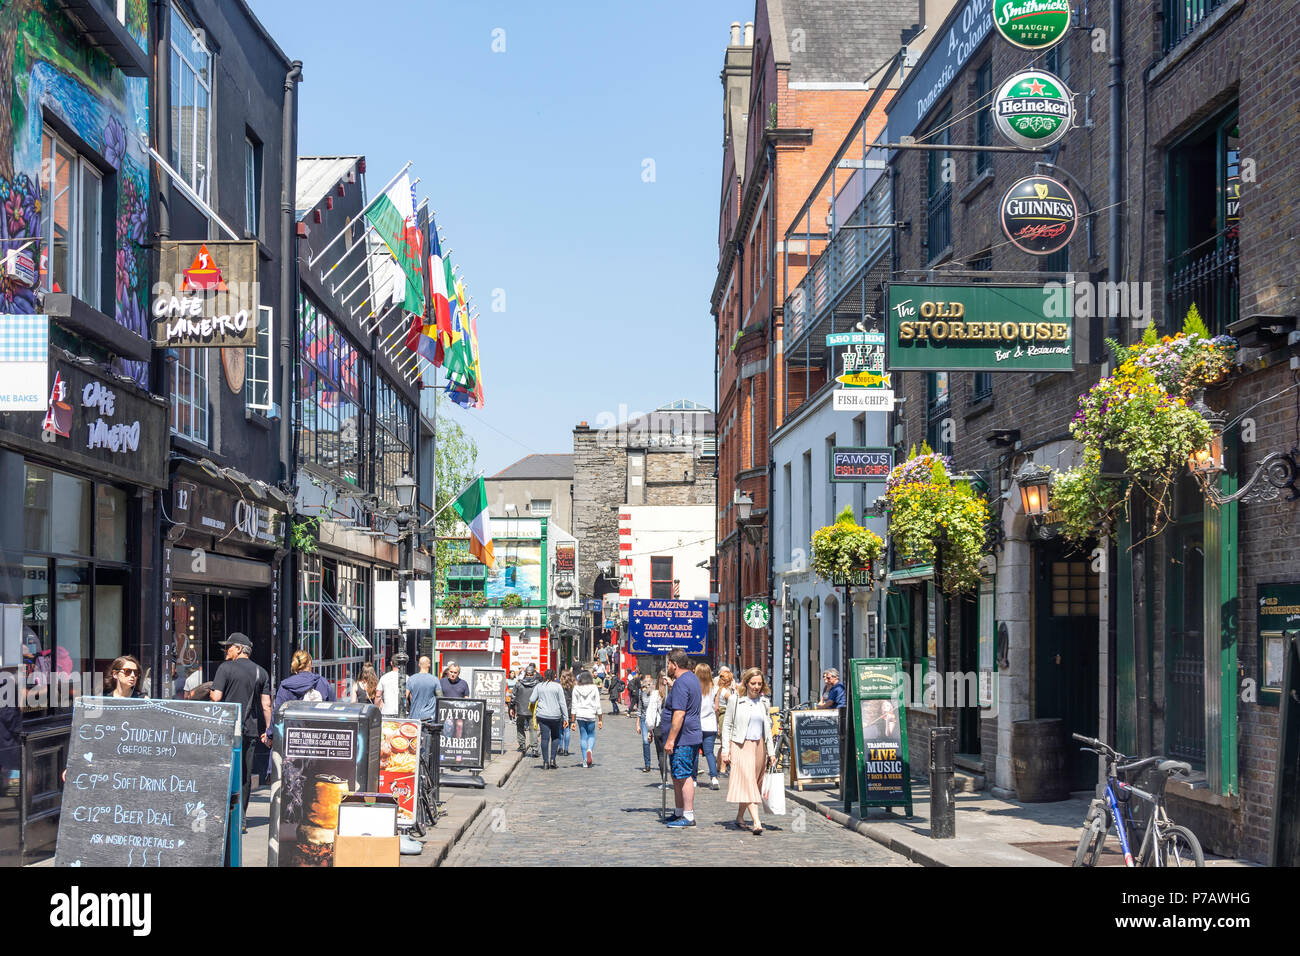 Cafes and bars on Crown Alley,Temple Bar, Dublin, Leinster Province, Republic of Ireland - Stock Image